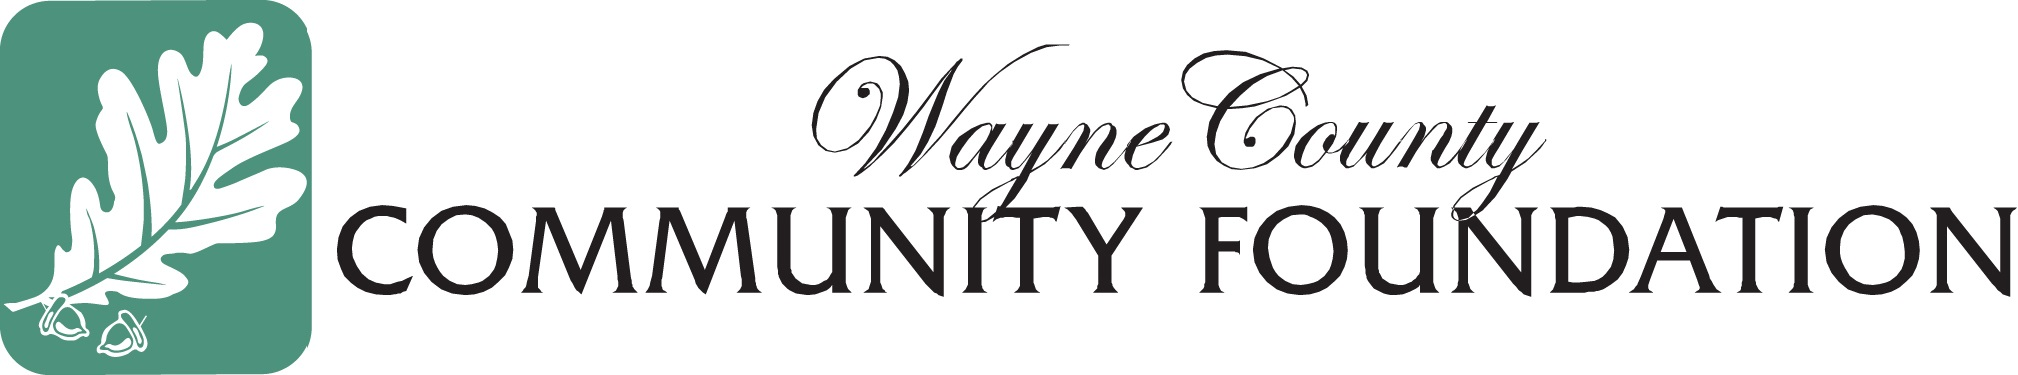 Wayne County Community Foundation logo